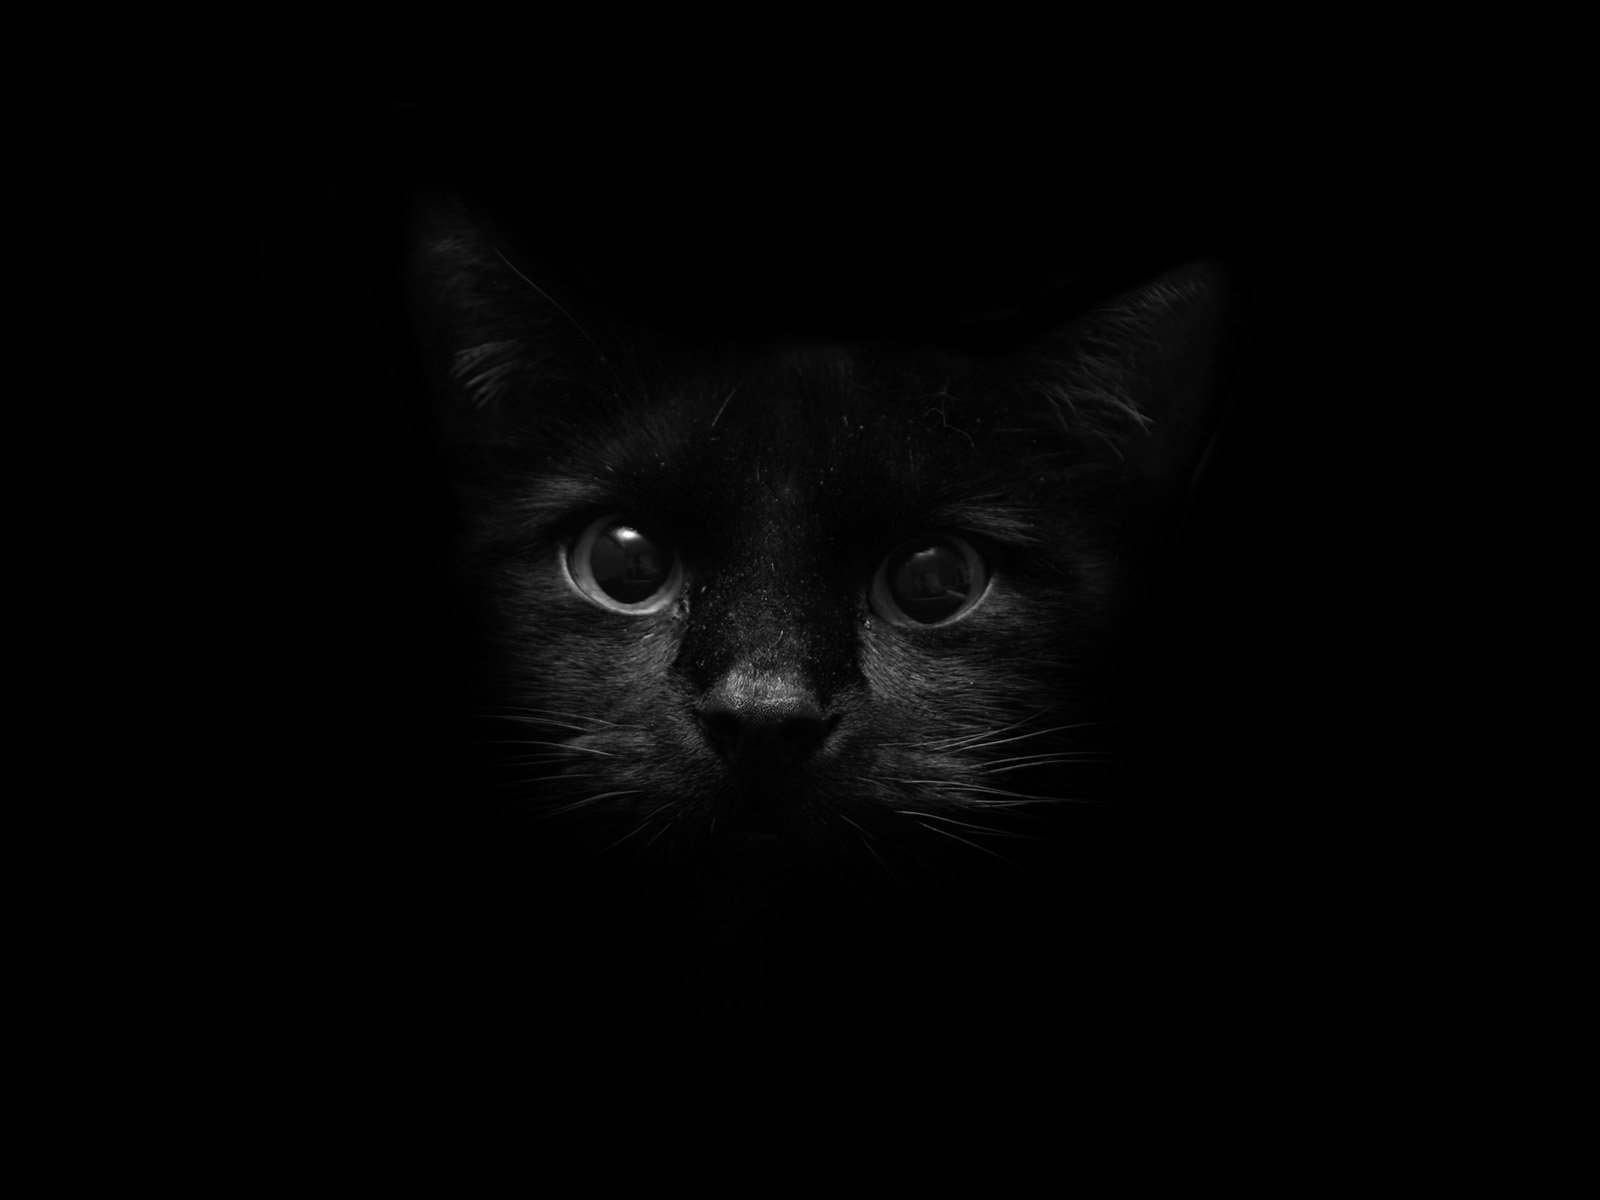 6584 cat hd wallpapers | backgrounds - wallpaper abyss